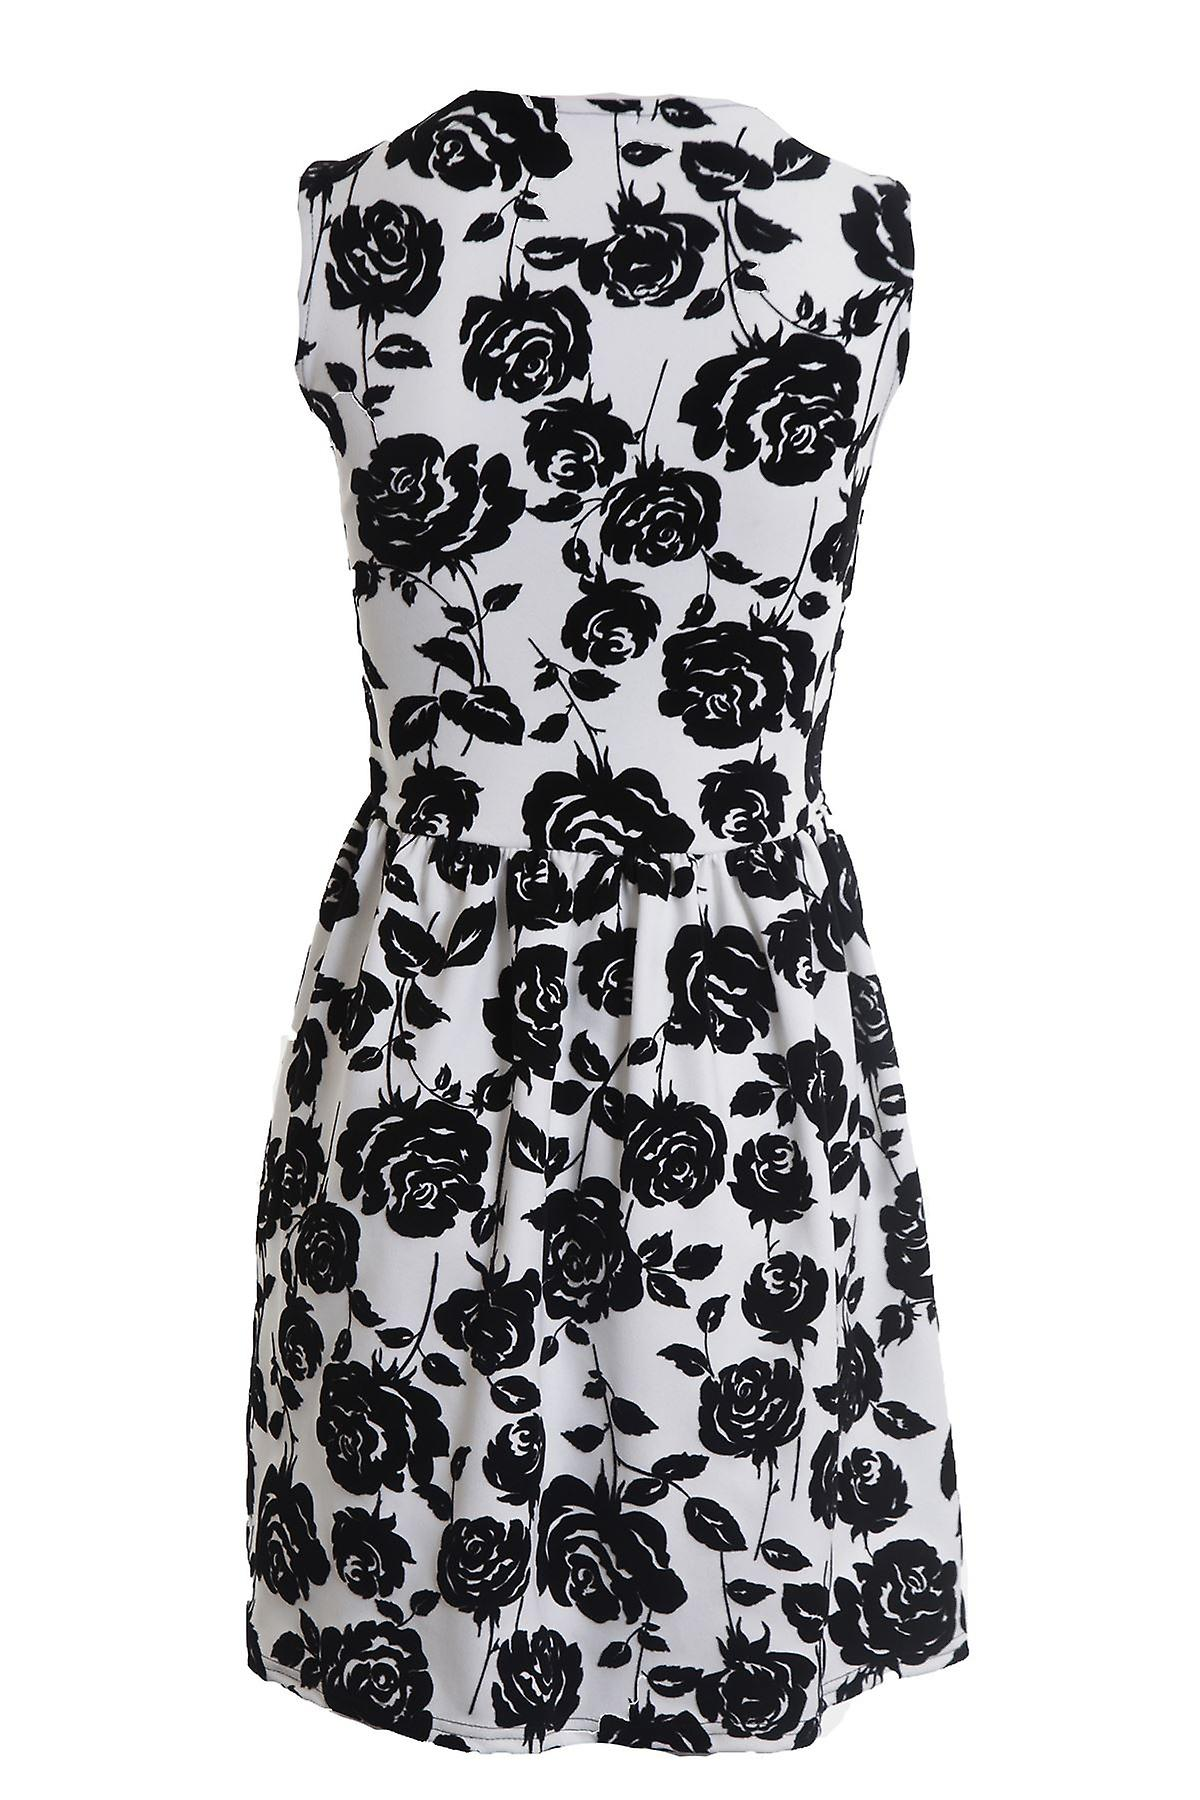 New Ladies Sleeveless Flora Flock Print Women's Flare Skater Dress